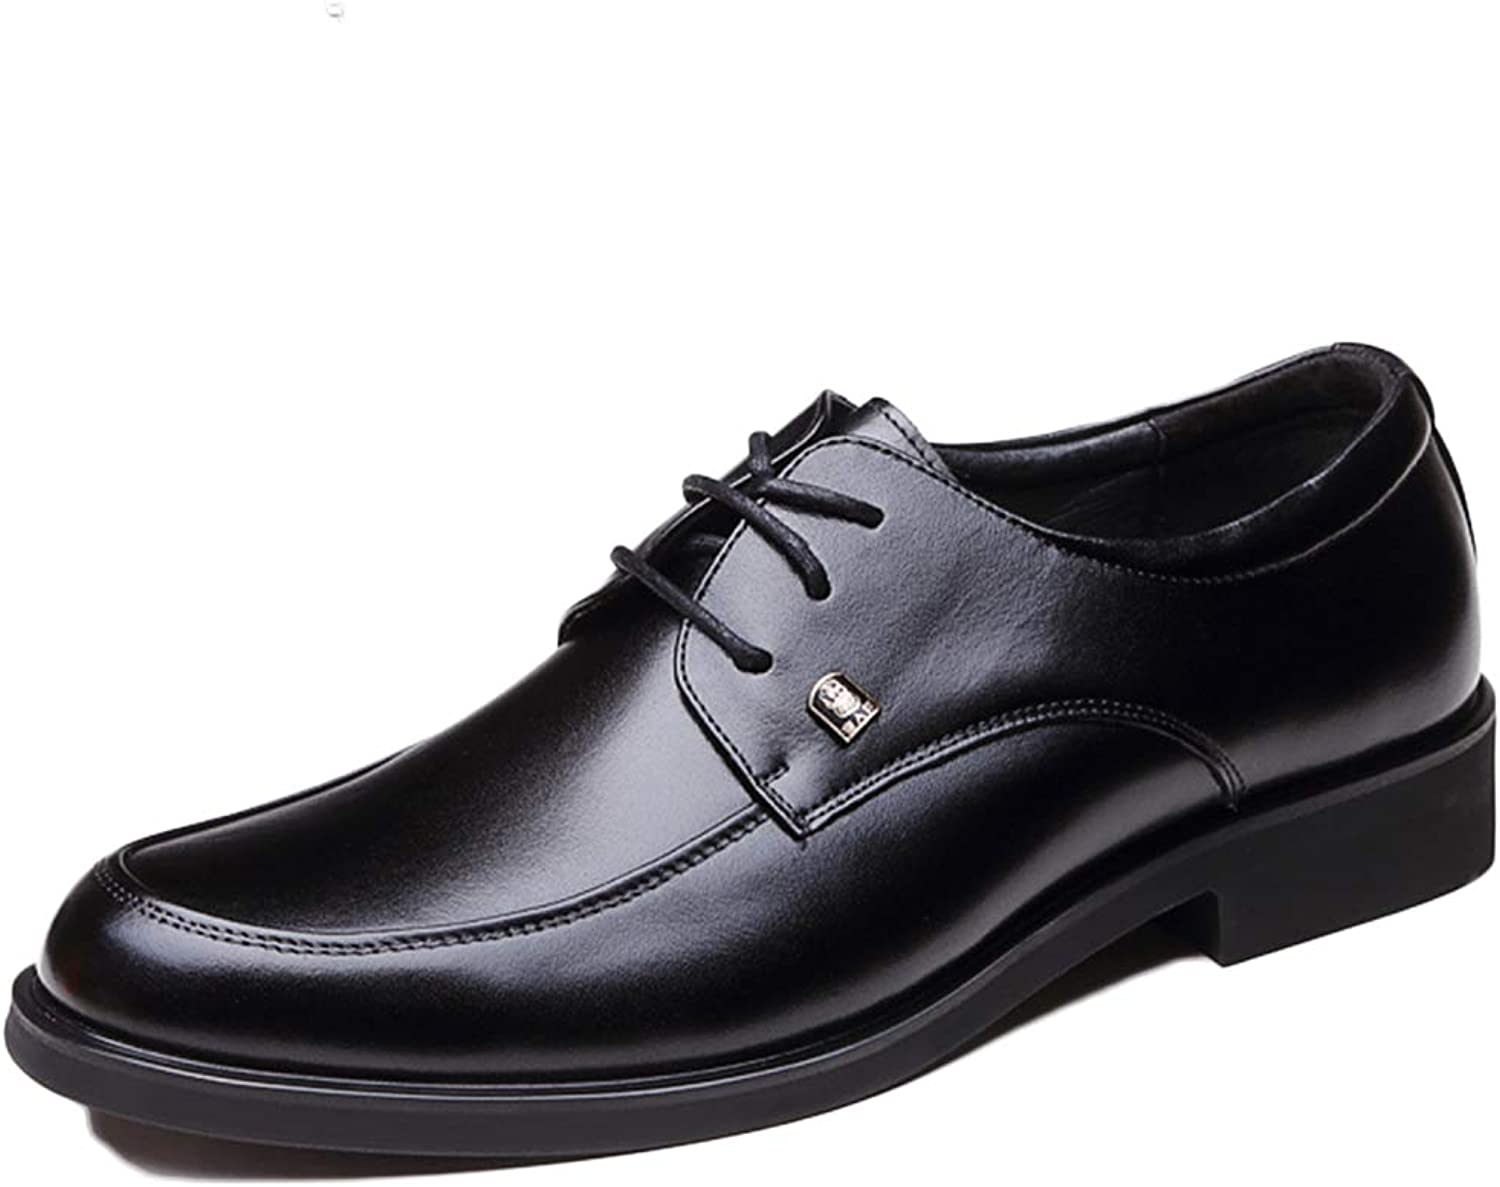 Mens Dress shoes Black Formal Business Oxfords Lace-up Autumn Winter shoes Leather shoes Round Head Wedding shoes